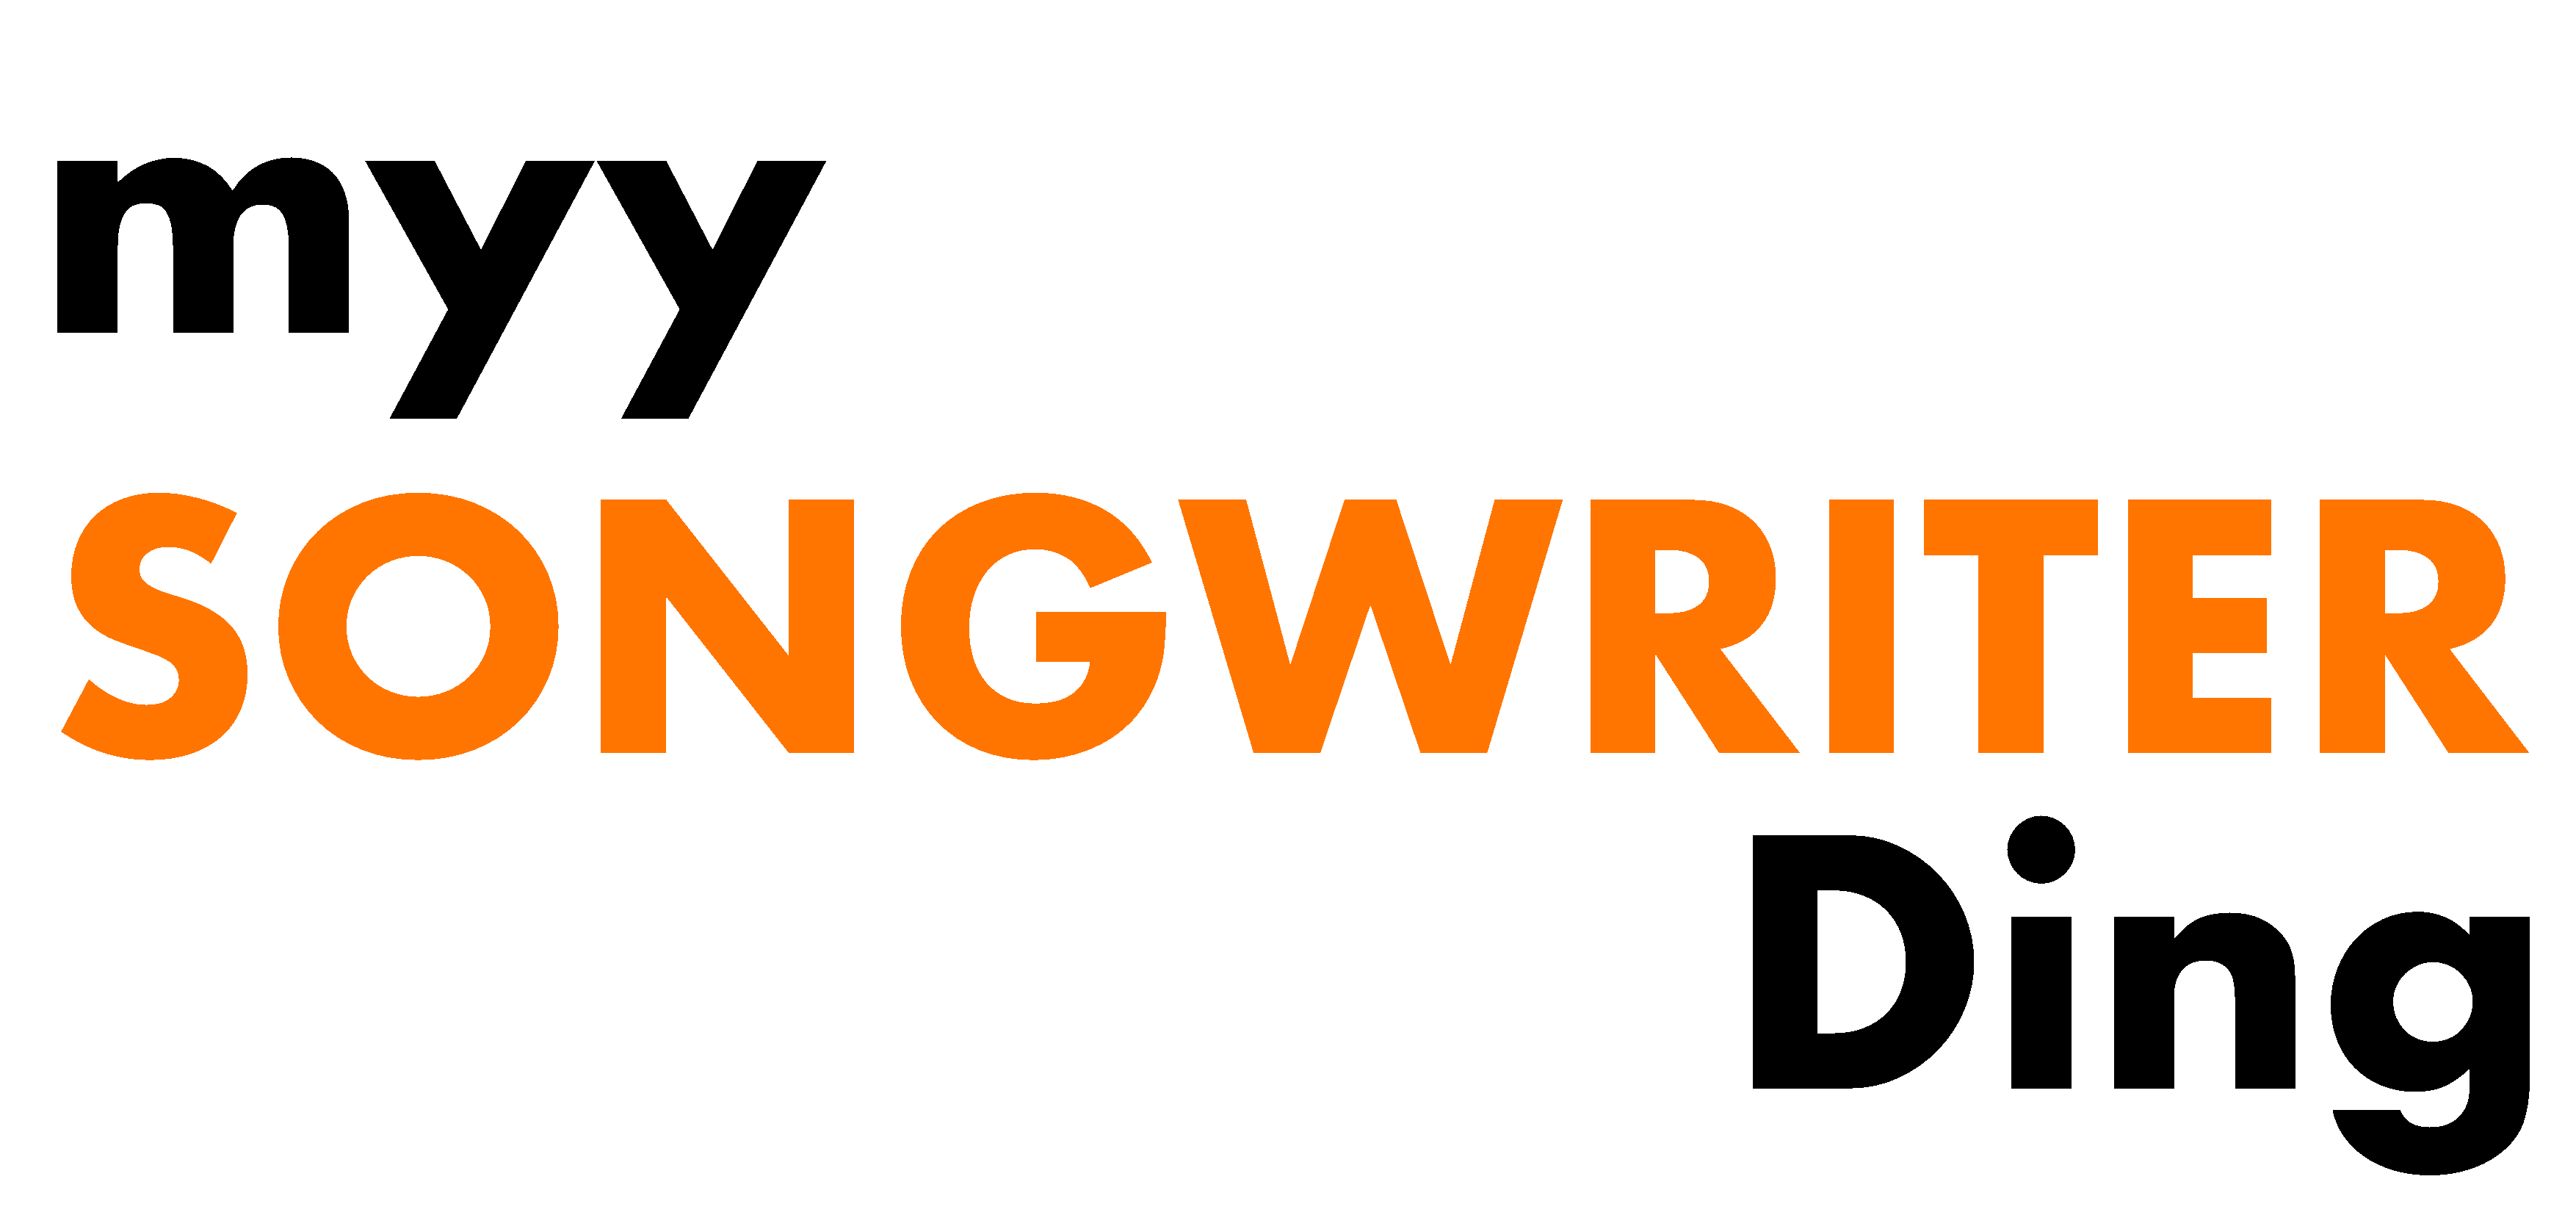 songwriterdingorangeblackneu1png